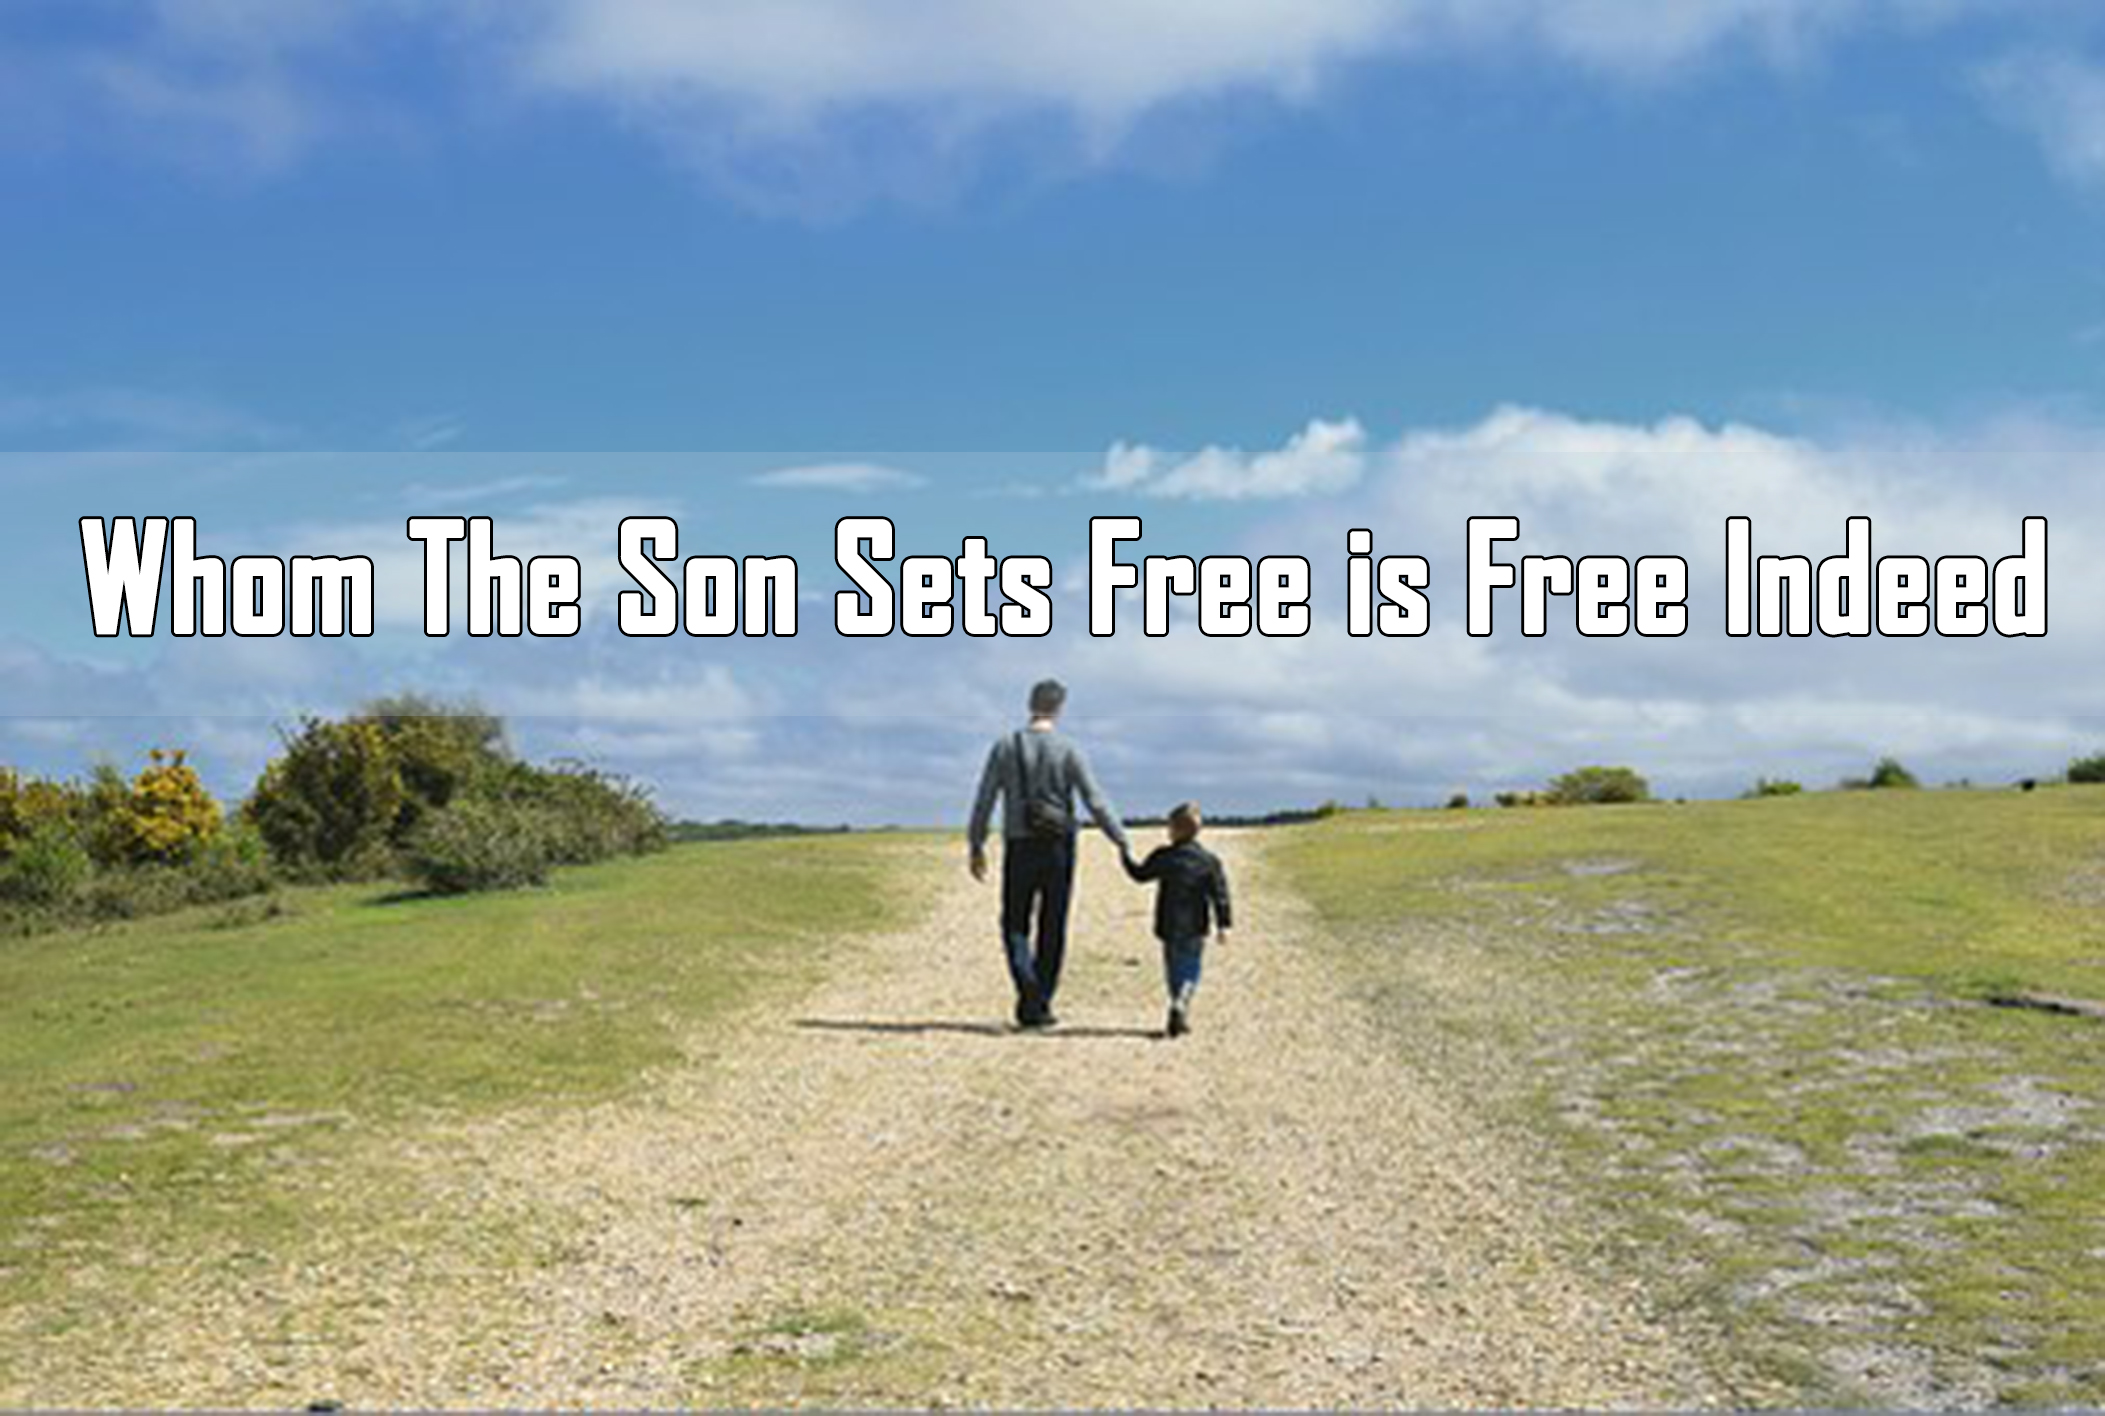 Whom the son sets free is free indeed<br/>Mathew Cherian